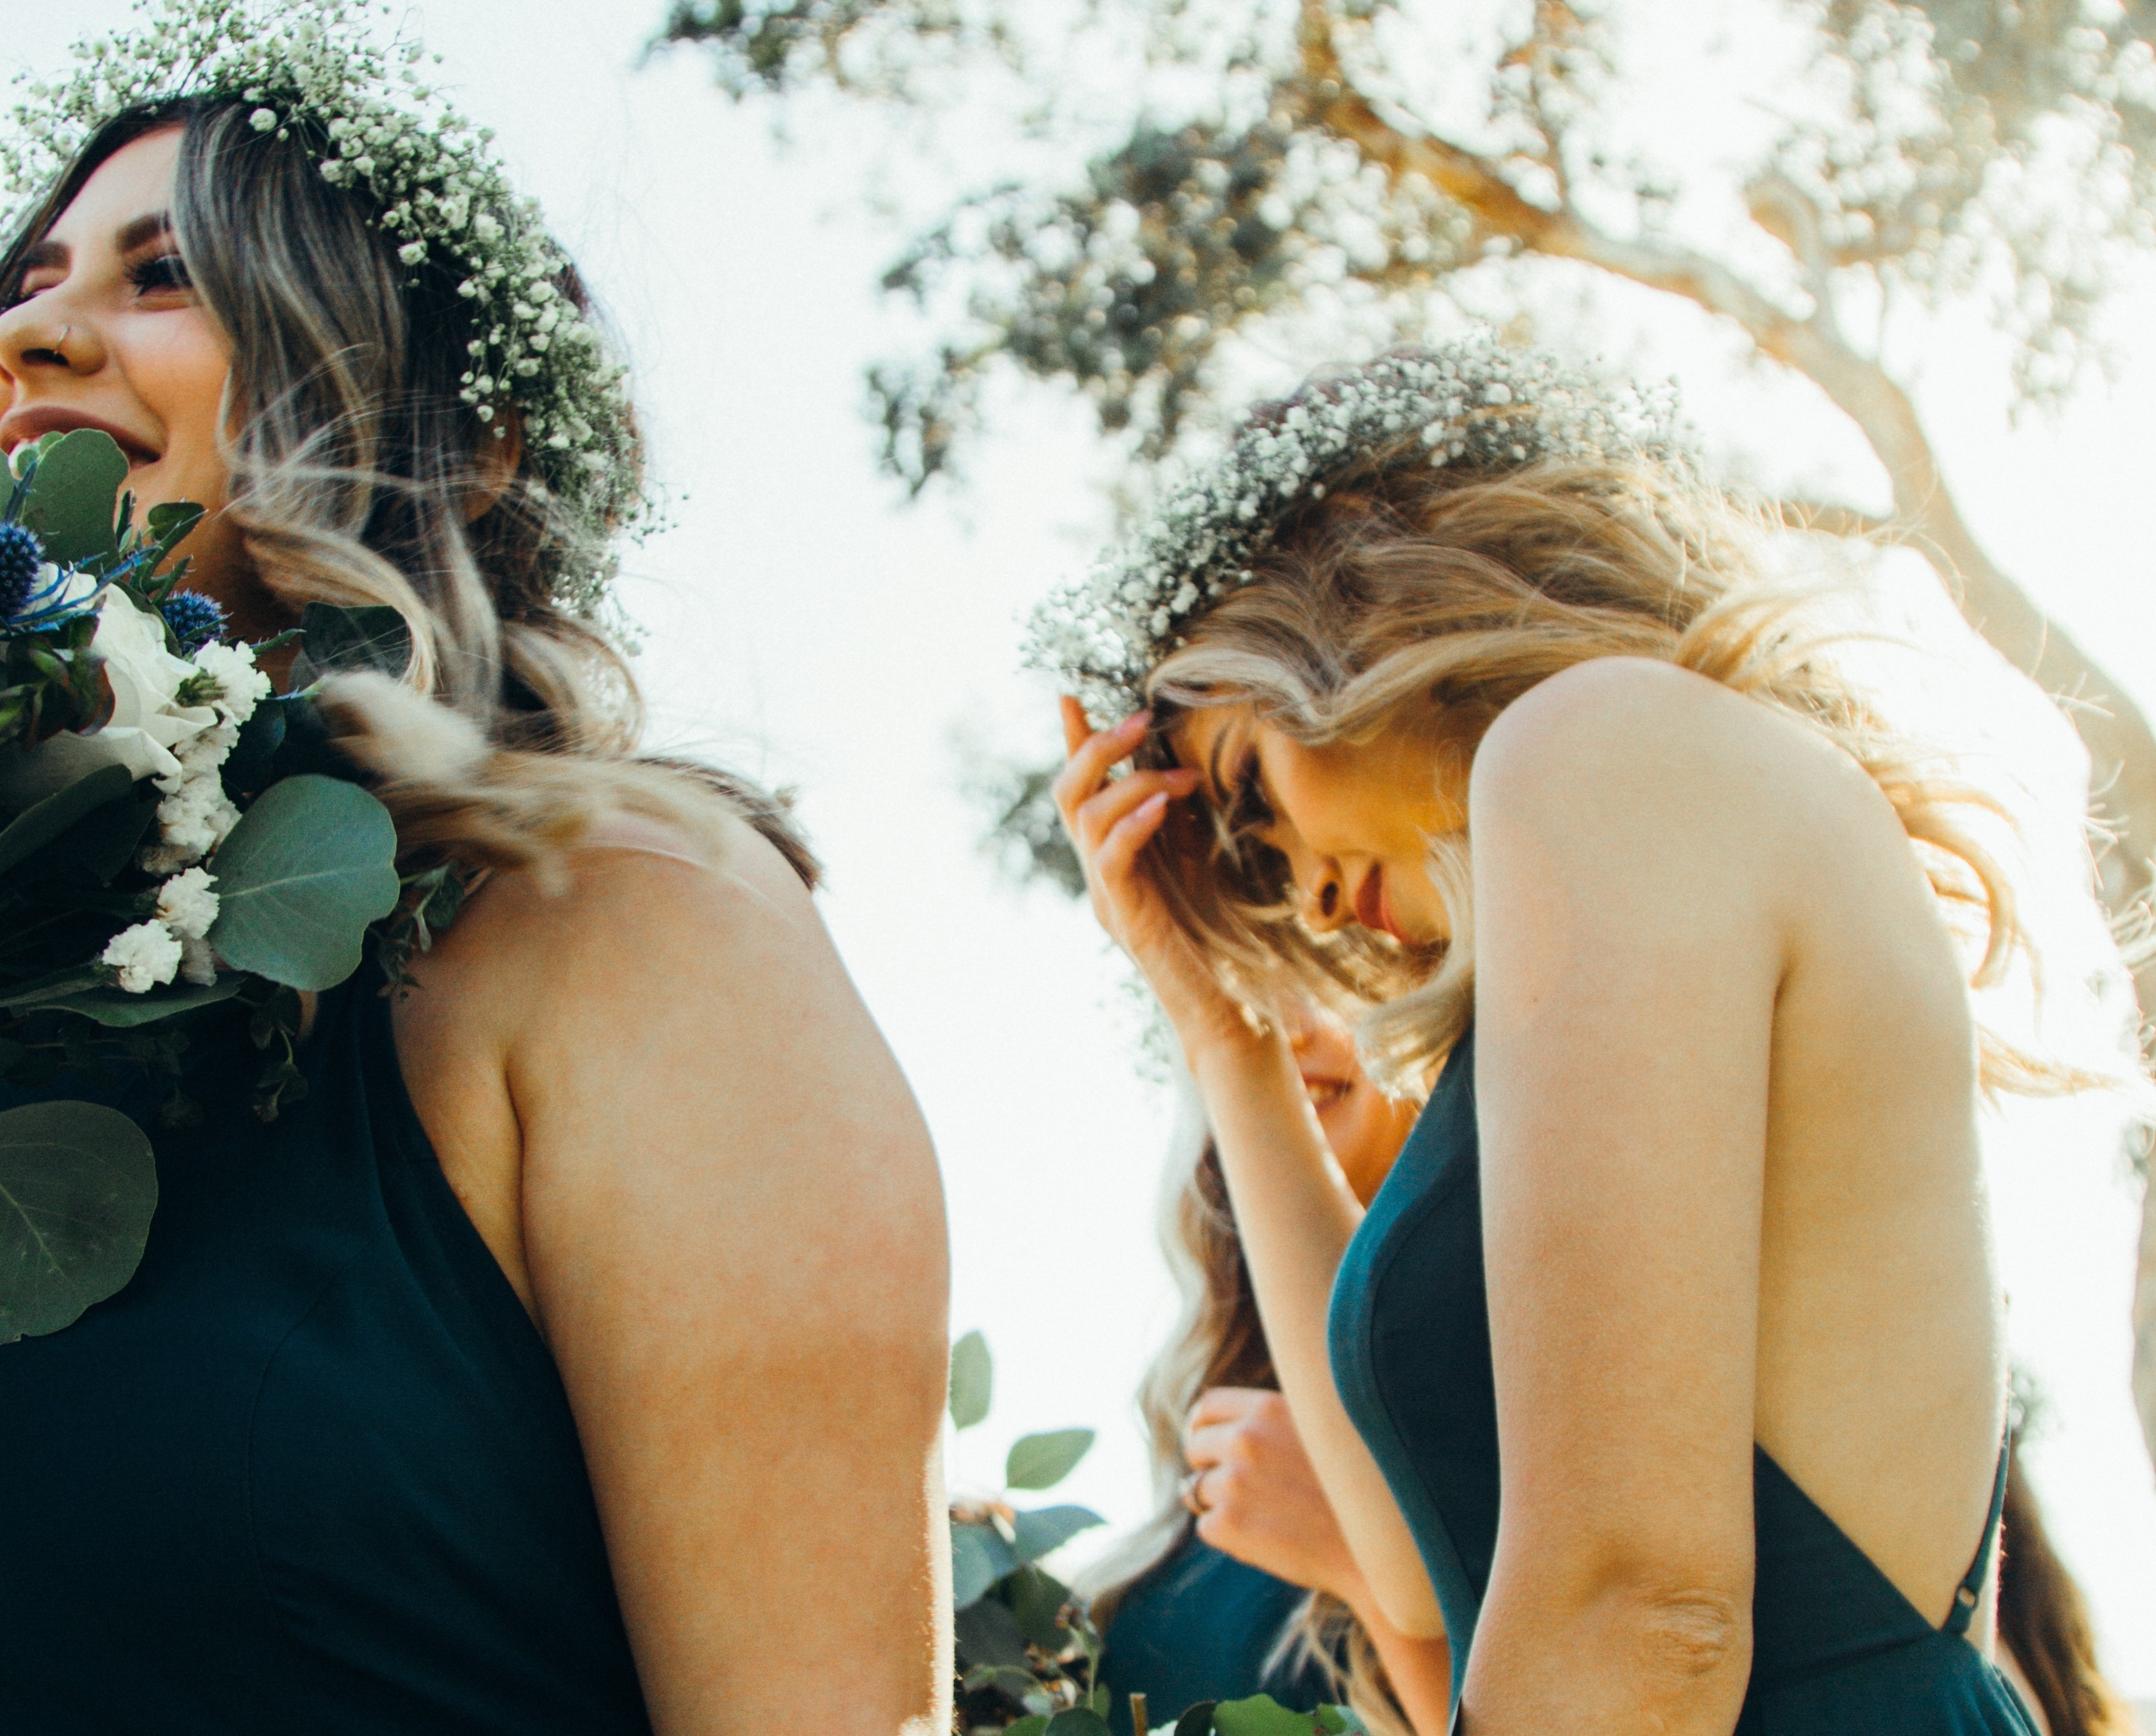 Don't Let Battling Bridesmaids Ruin Your Day